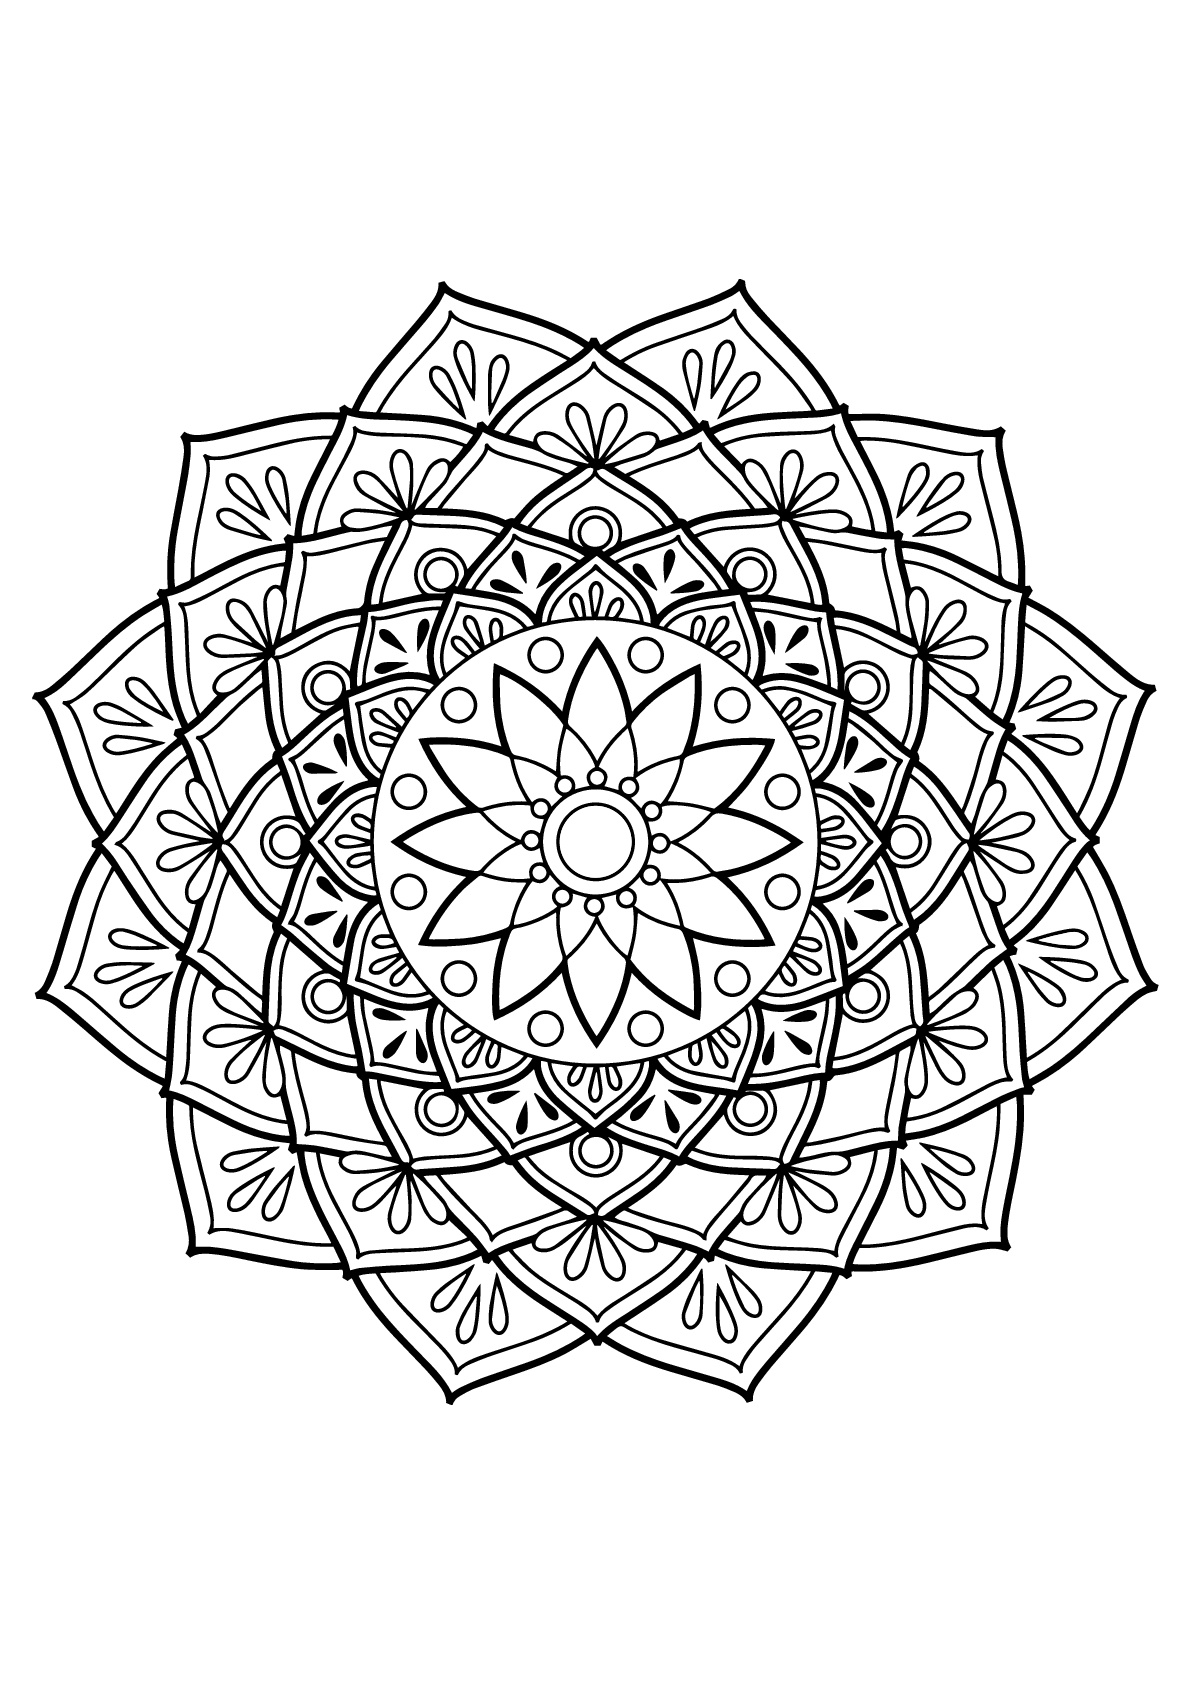 free printable mandalas to color for adults mandala to download in pdf 1 malas adult coloring pages free color mandalas to printable for adults